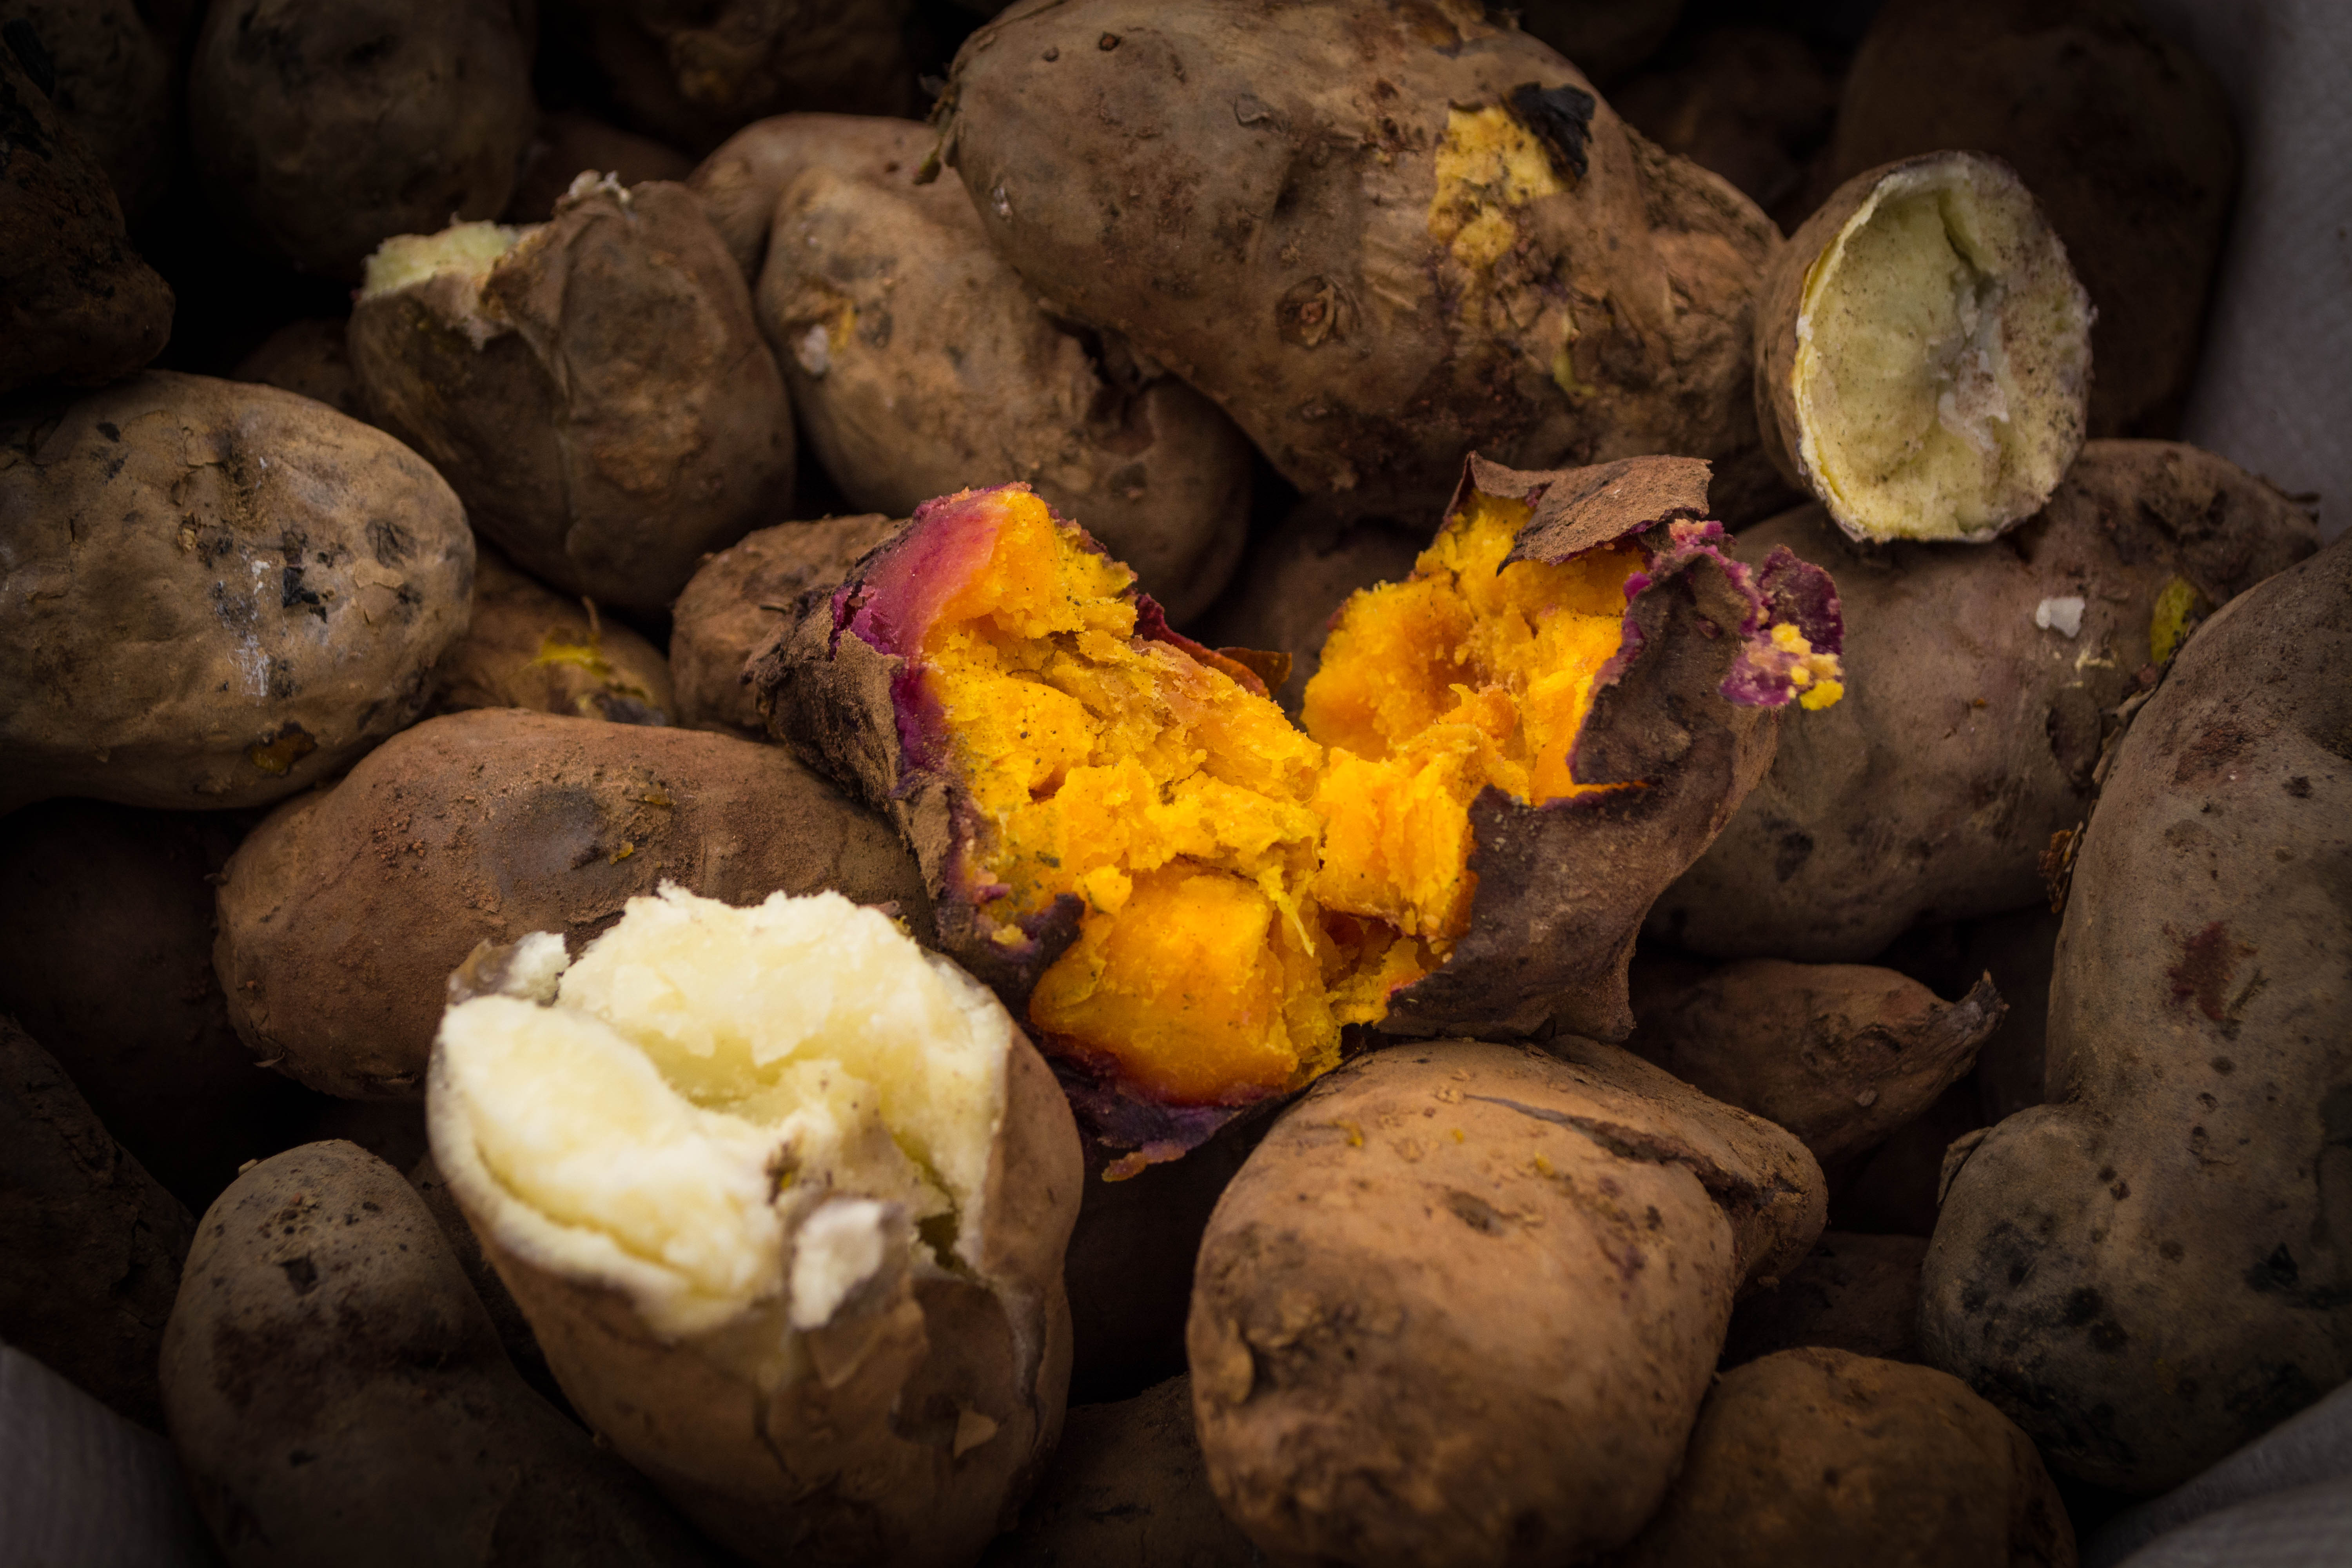 A Huatia Dish, Prepared into the Earth, Baked Potatoes and Sweet Potato (Walter Coraza Morveli)